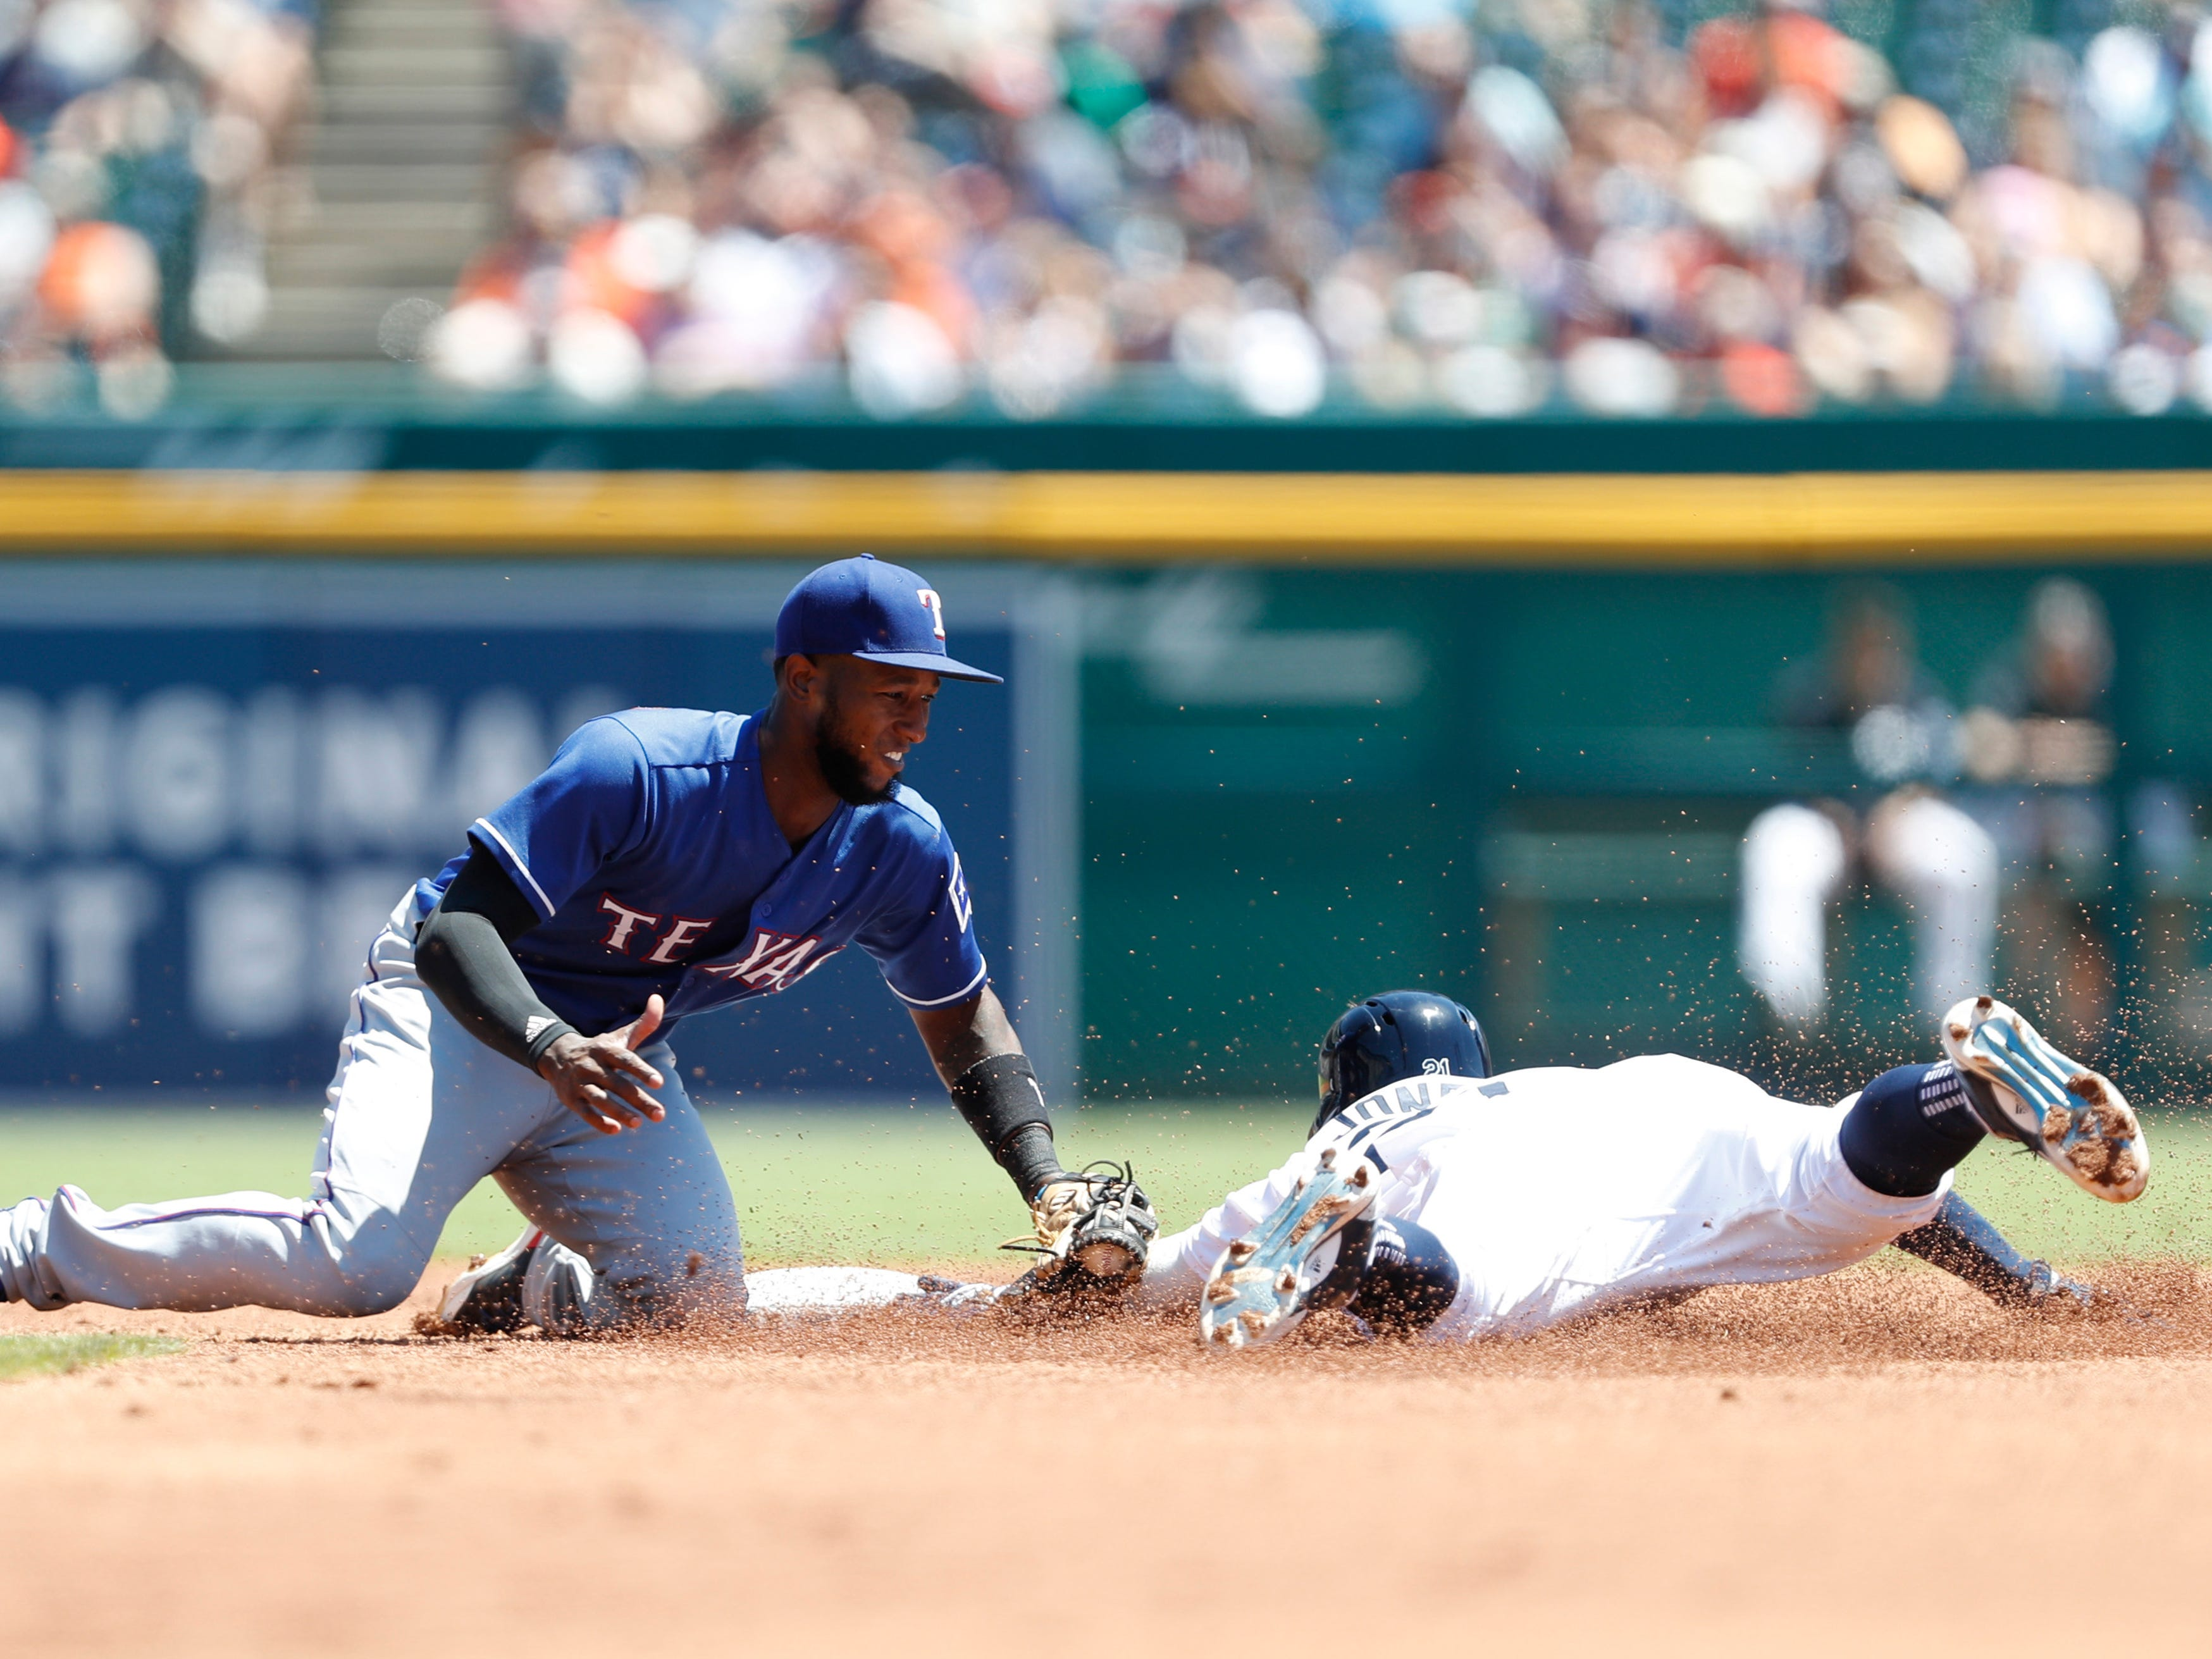 July 8 in Detroit: Rangers 3, Tigers 0. Shortstop Jurickson Profar tags out Tigers center fielder JaCoby Jones at second base during the first inning at Comerica Park.